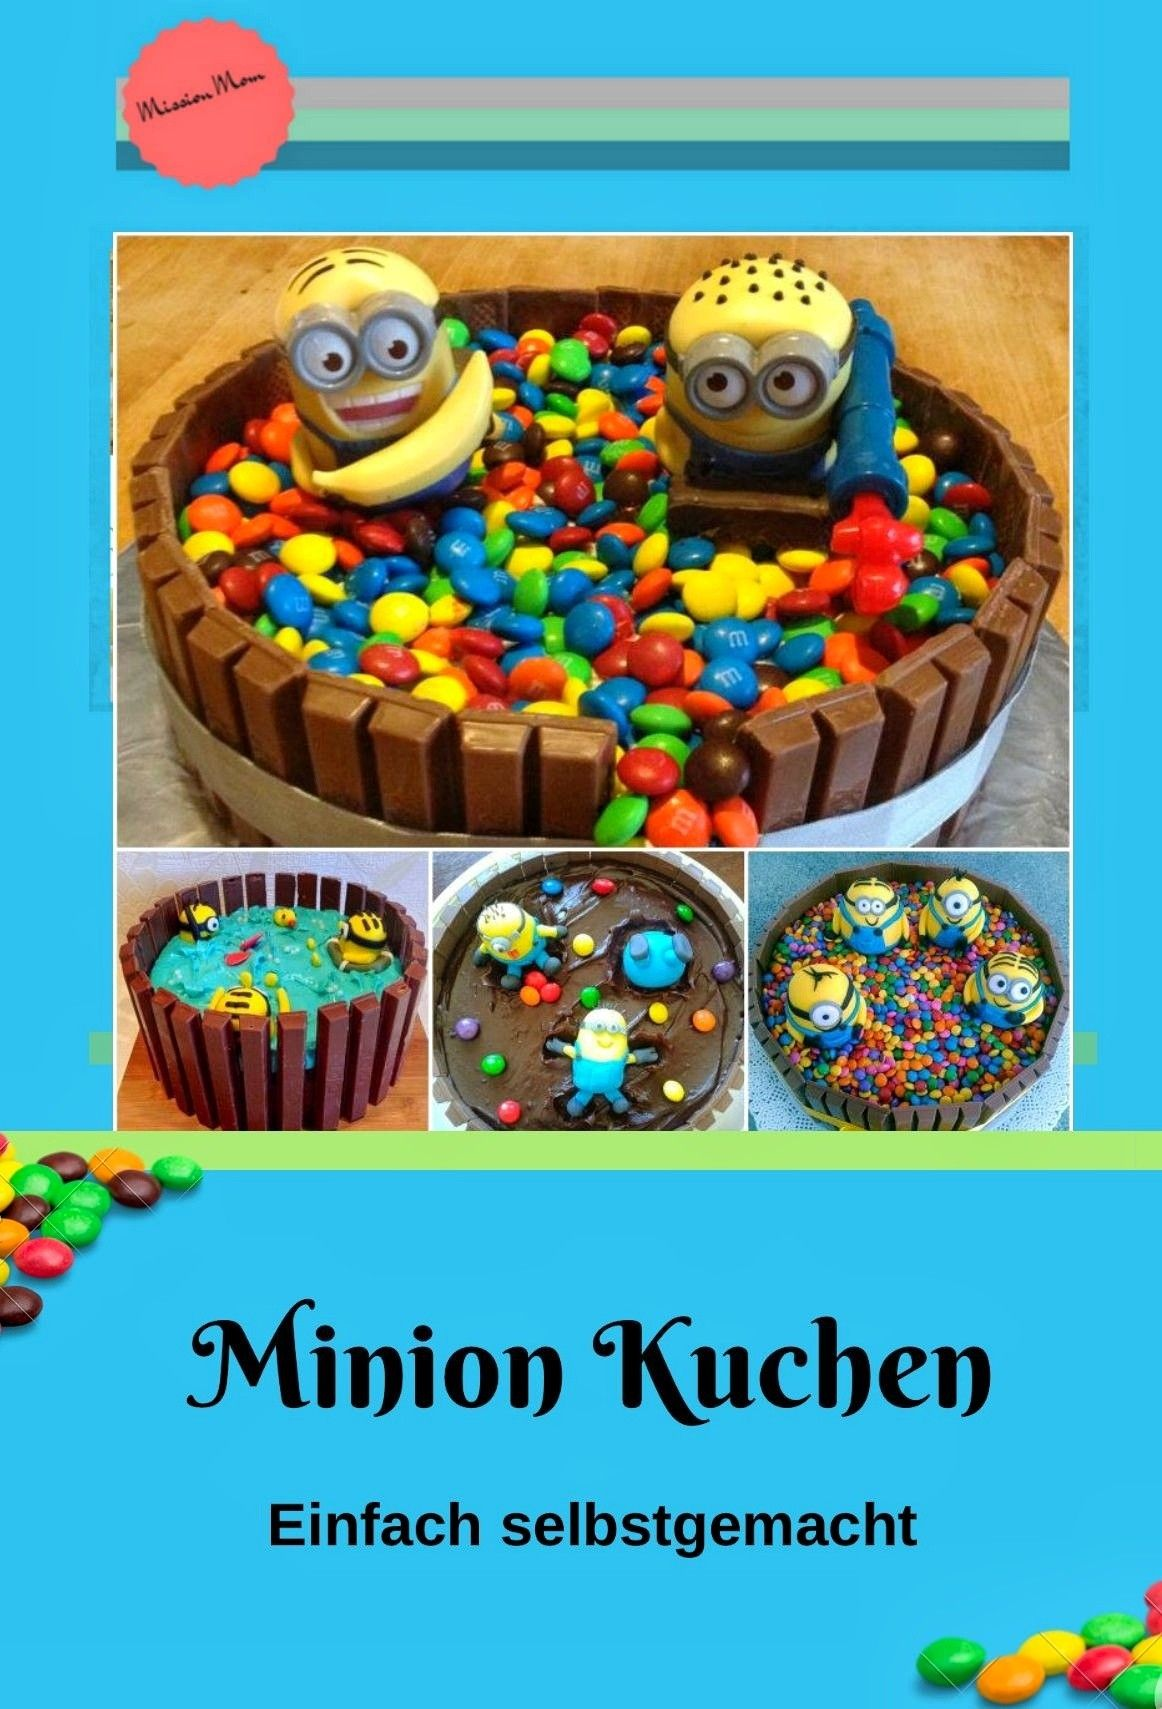 Minion Kuchen Backen Einfacher Minion Kuchen Backen So Gehts Blog Mission Mom